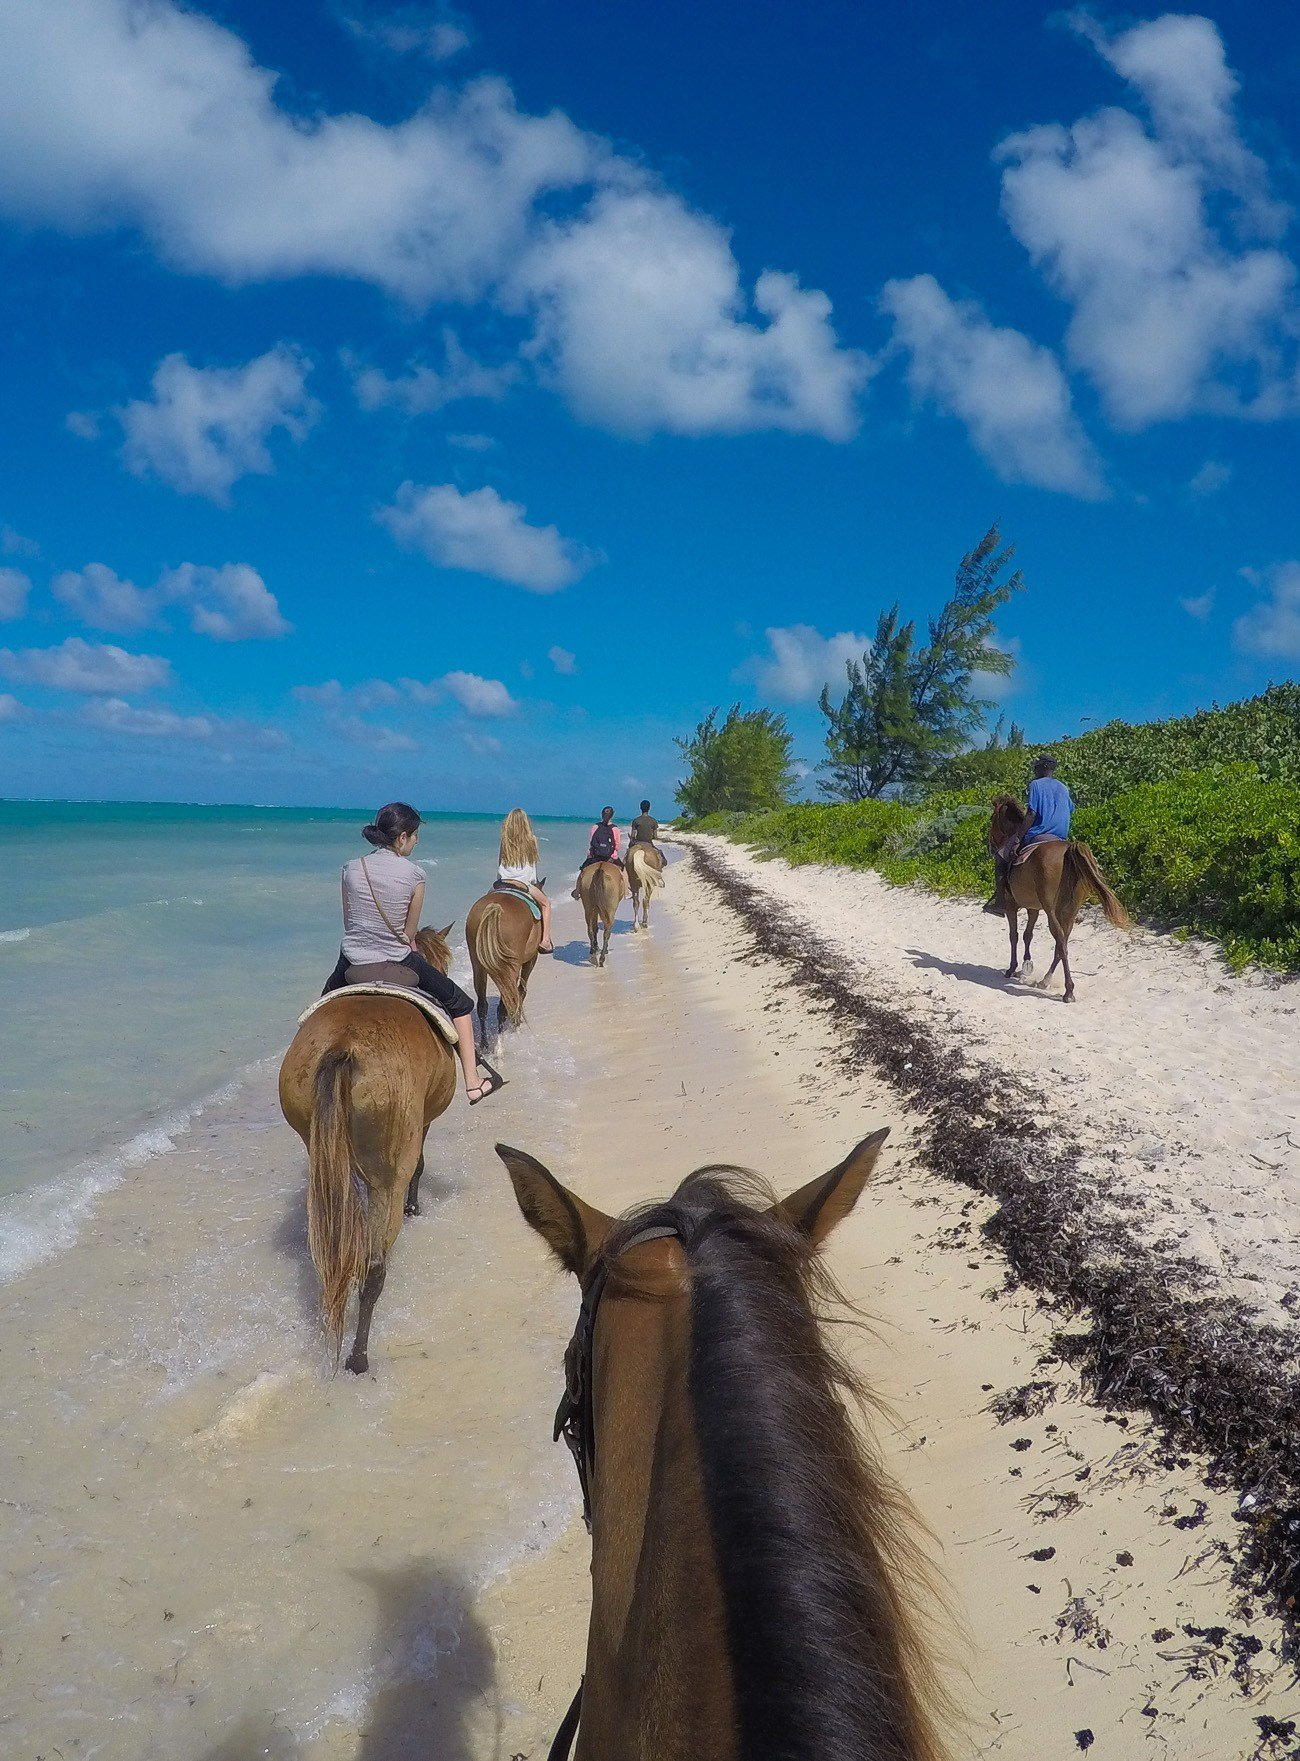 Horseback riding on the beach is a fun Grand Cayman activity with kids or without.